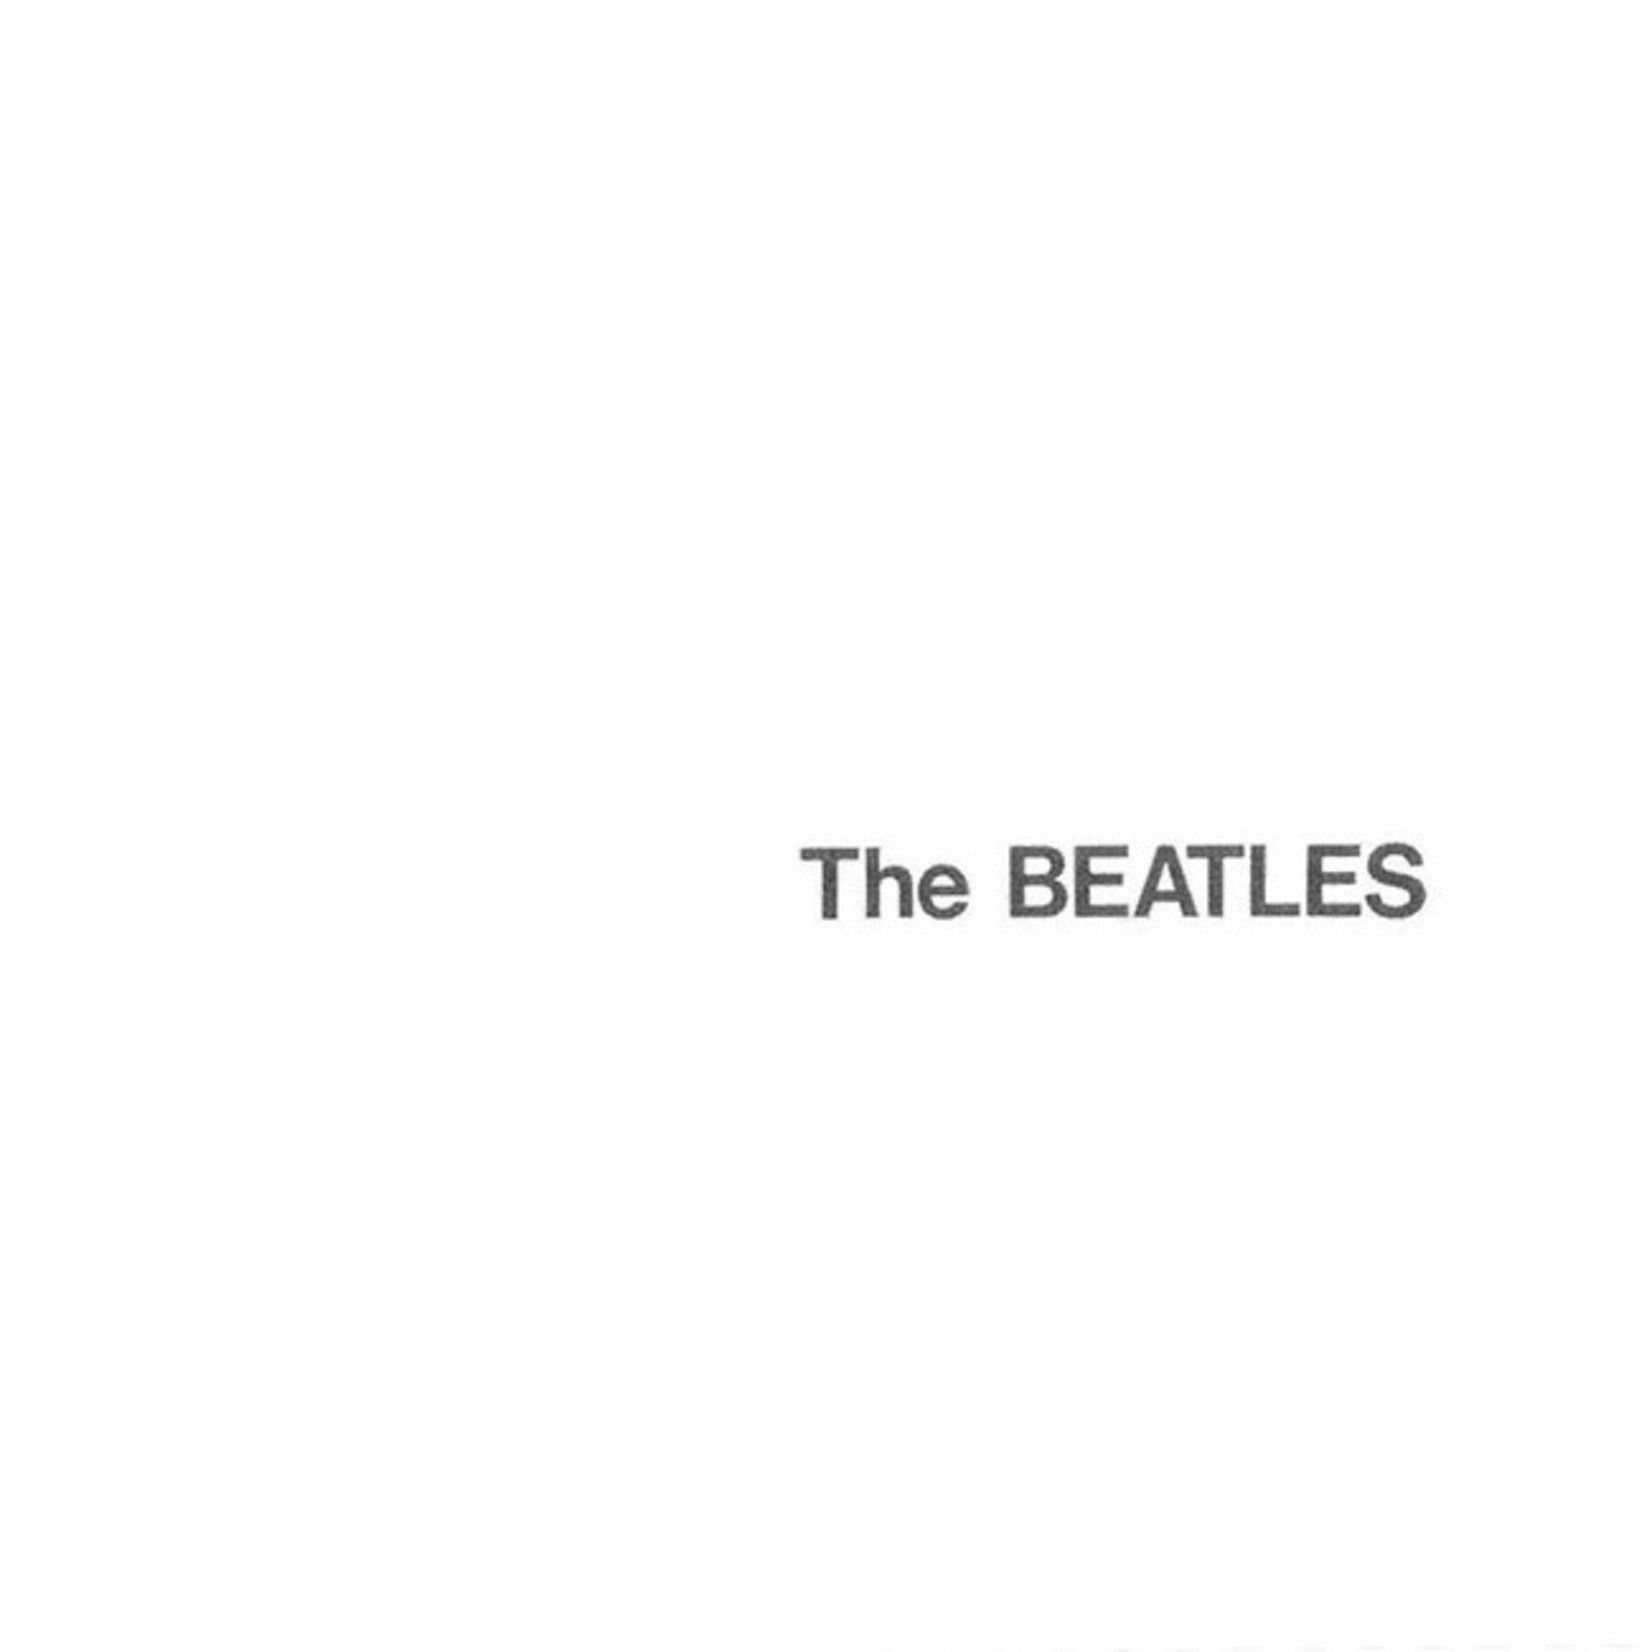 [New] Beatles: self-titled (The White Album) (2LP, Giles Martin stereo mix)